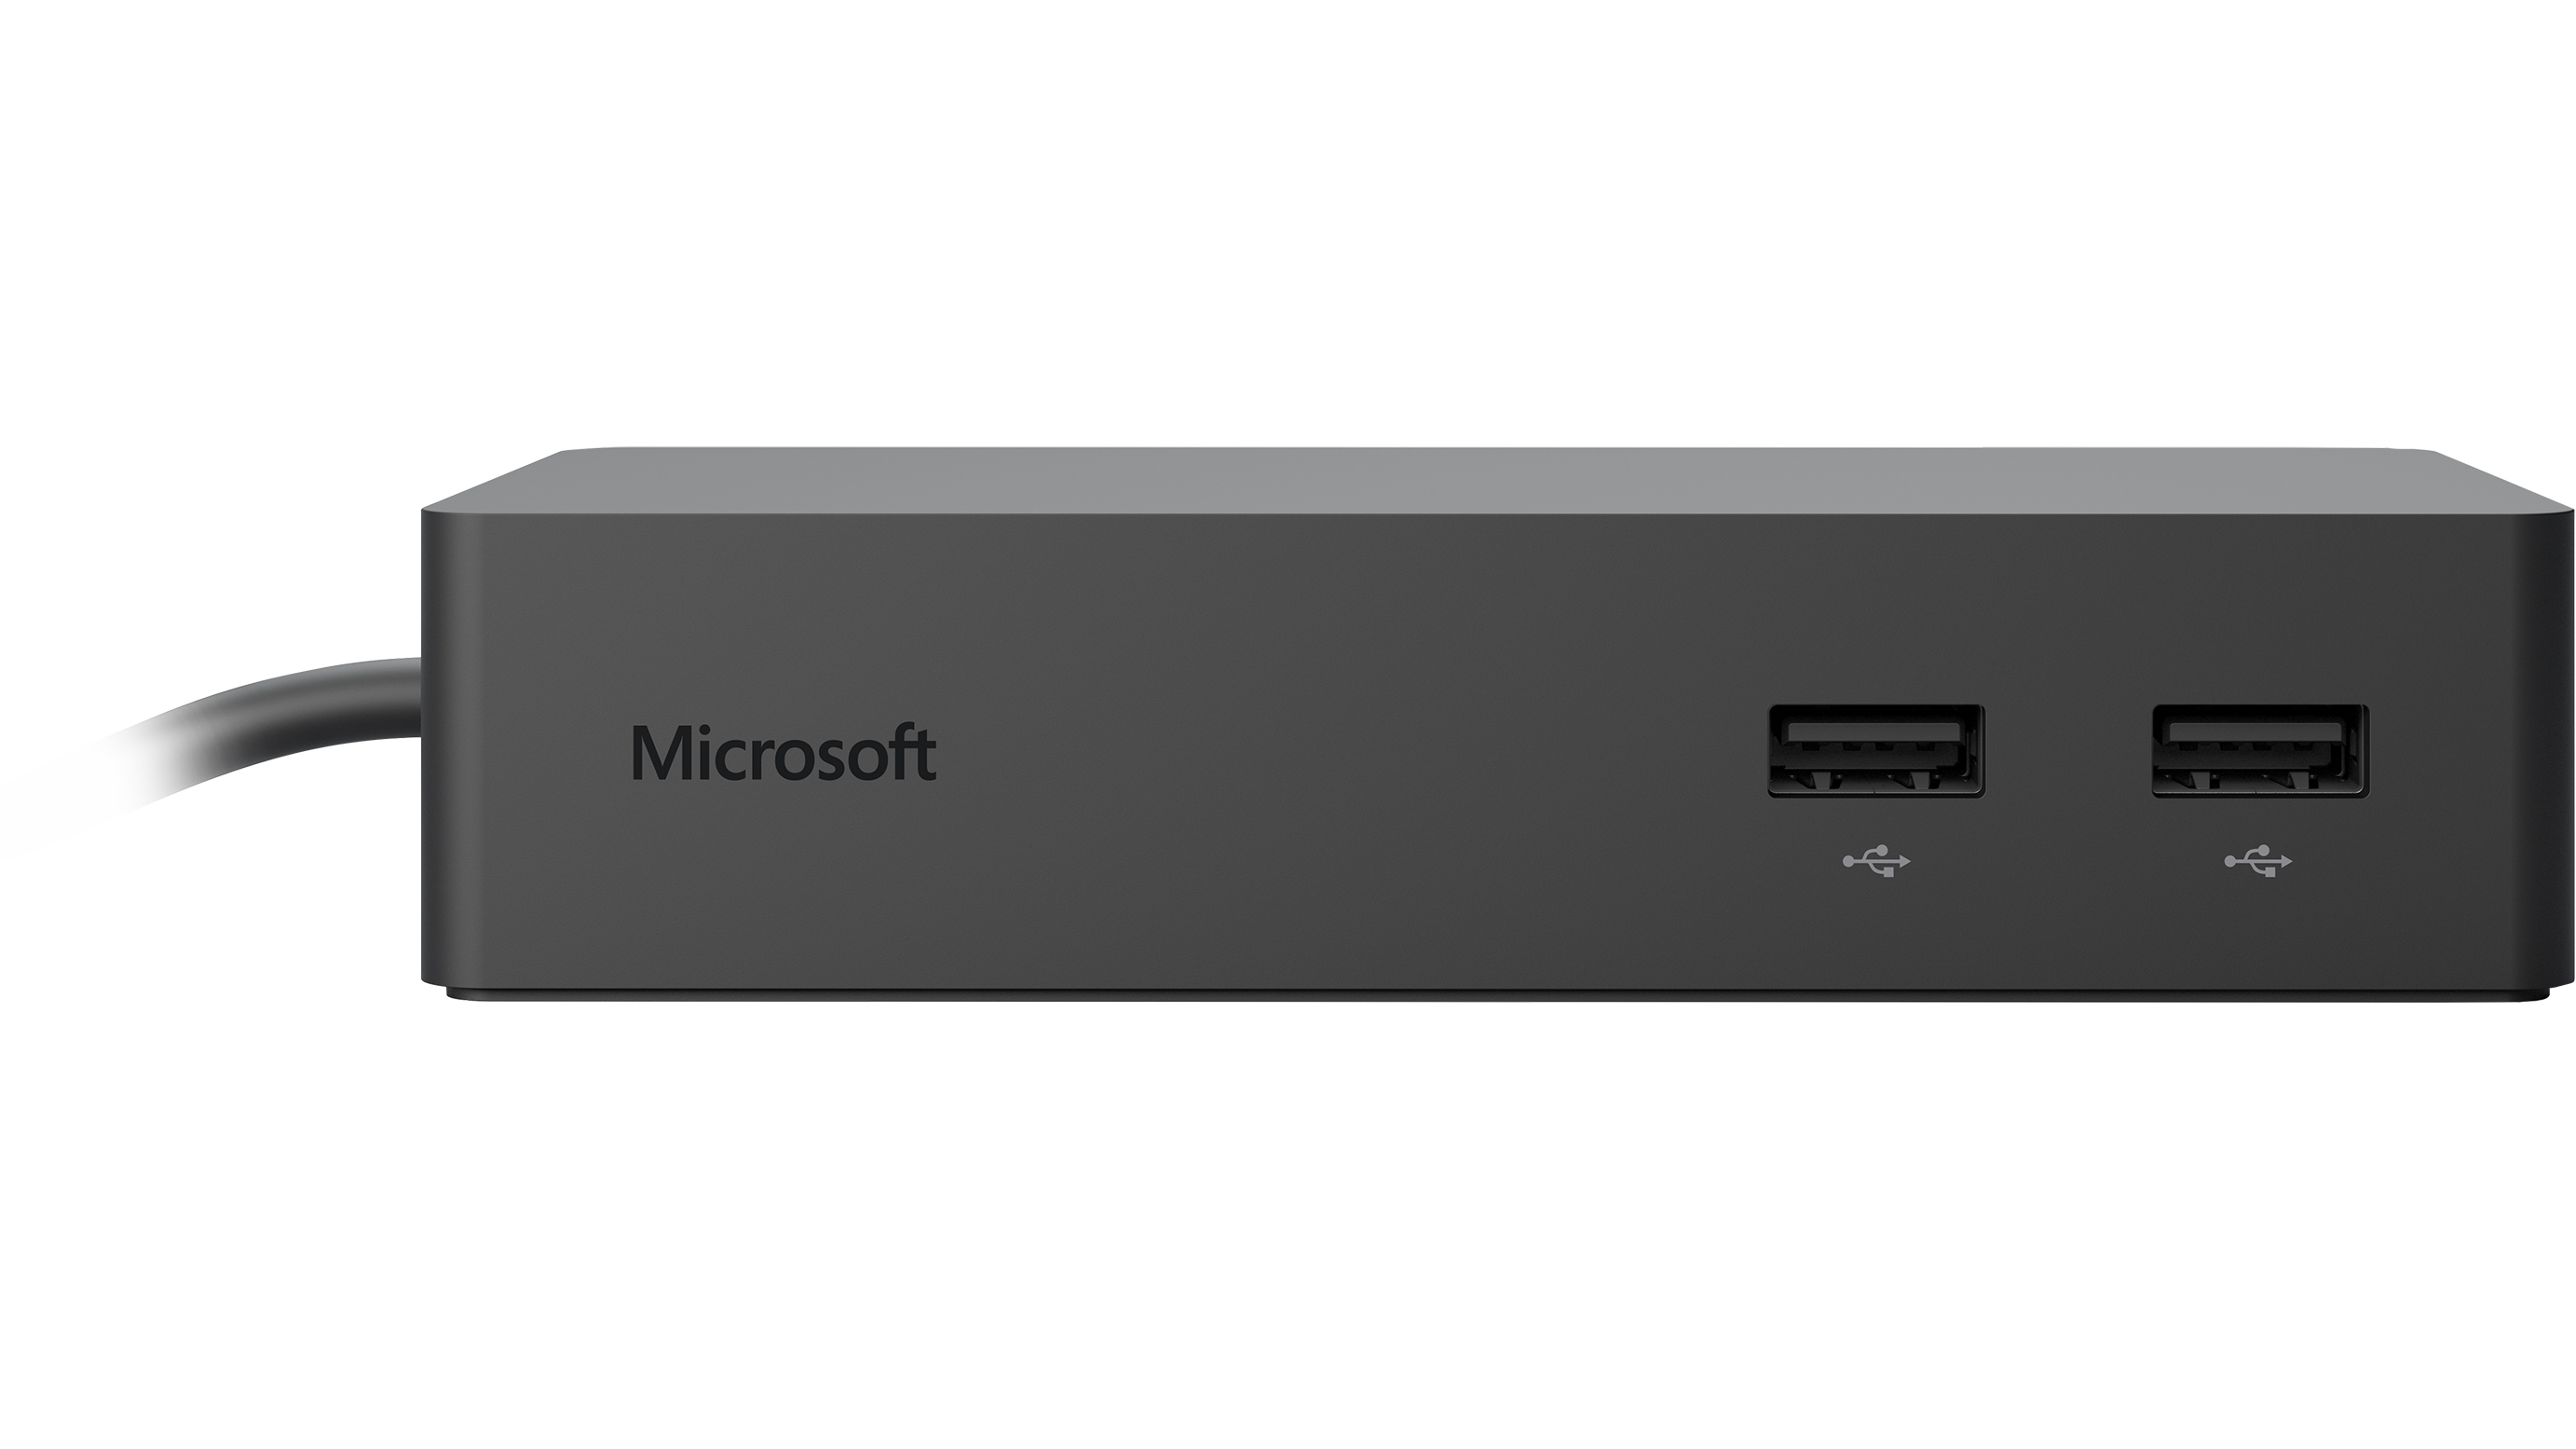 Microsoft Surface Dock - front view